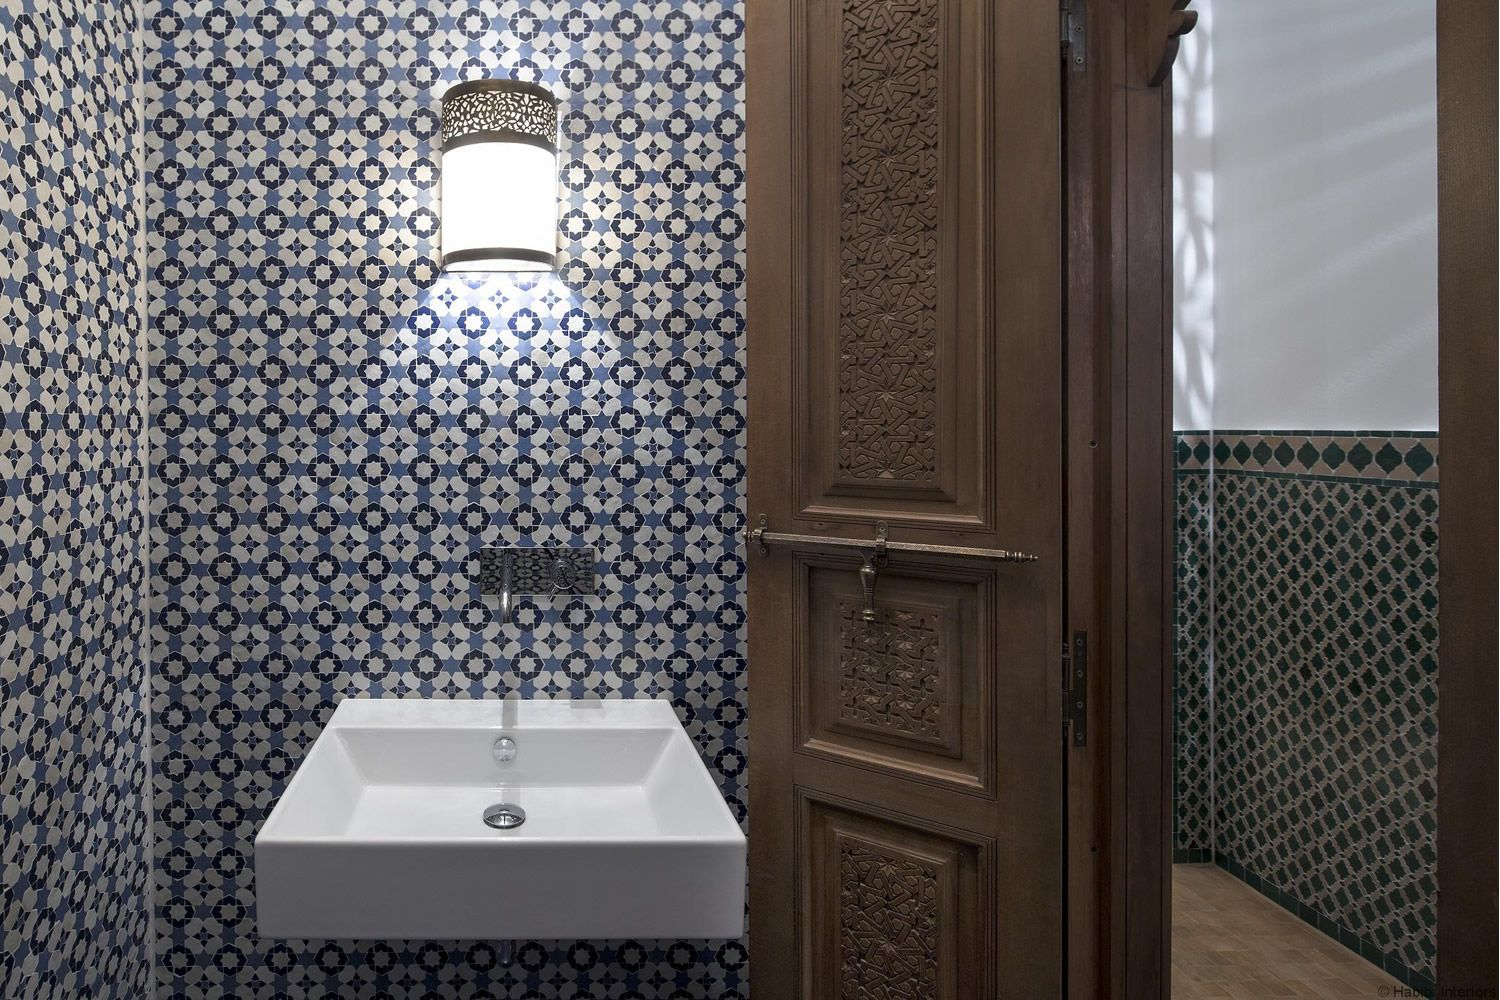 Moroccan Mosaic Tile projects.